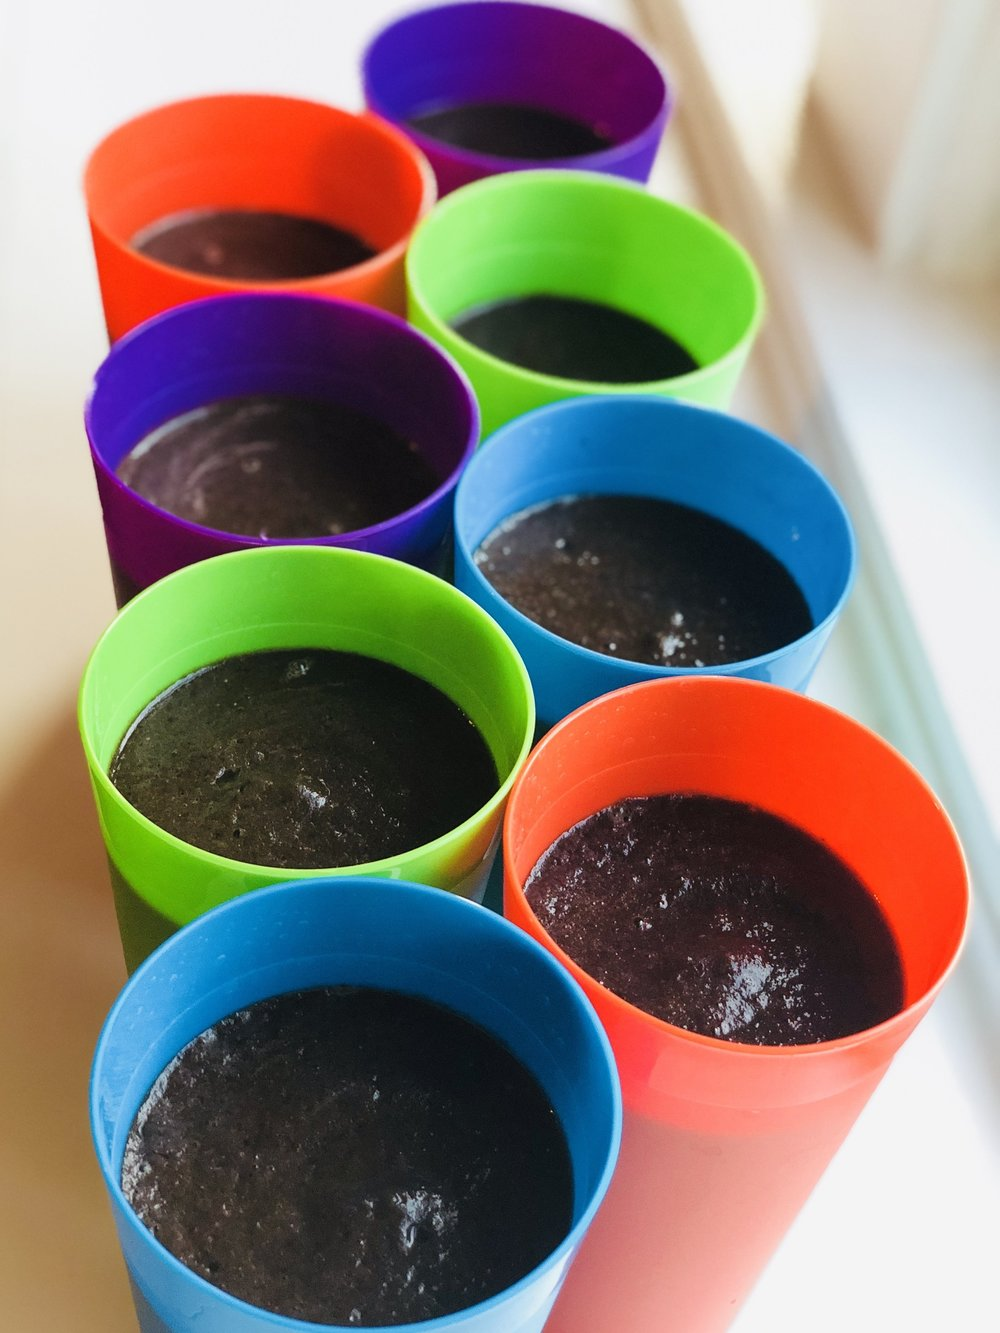 These are 32-oz cups!